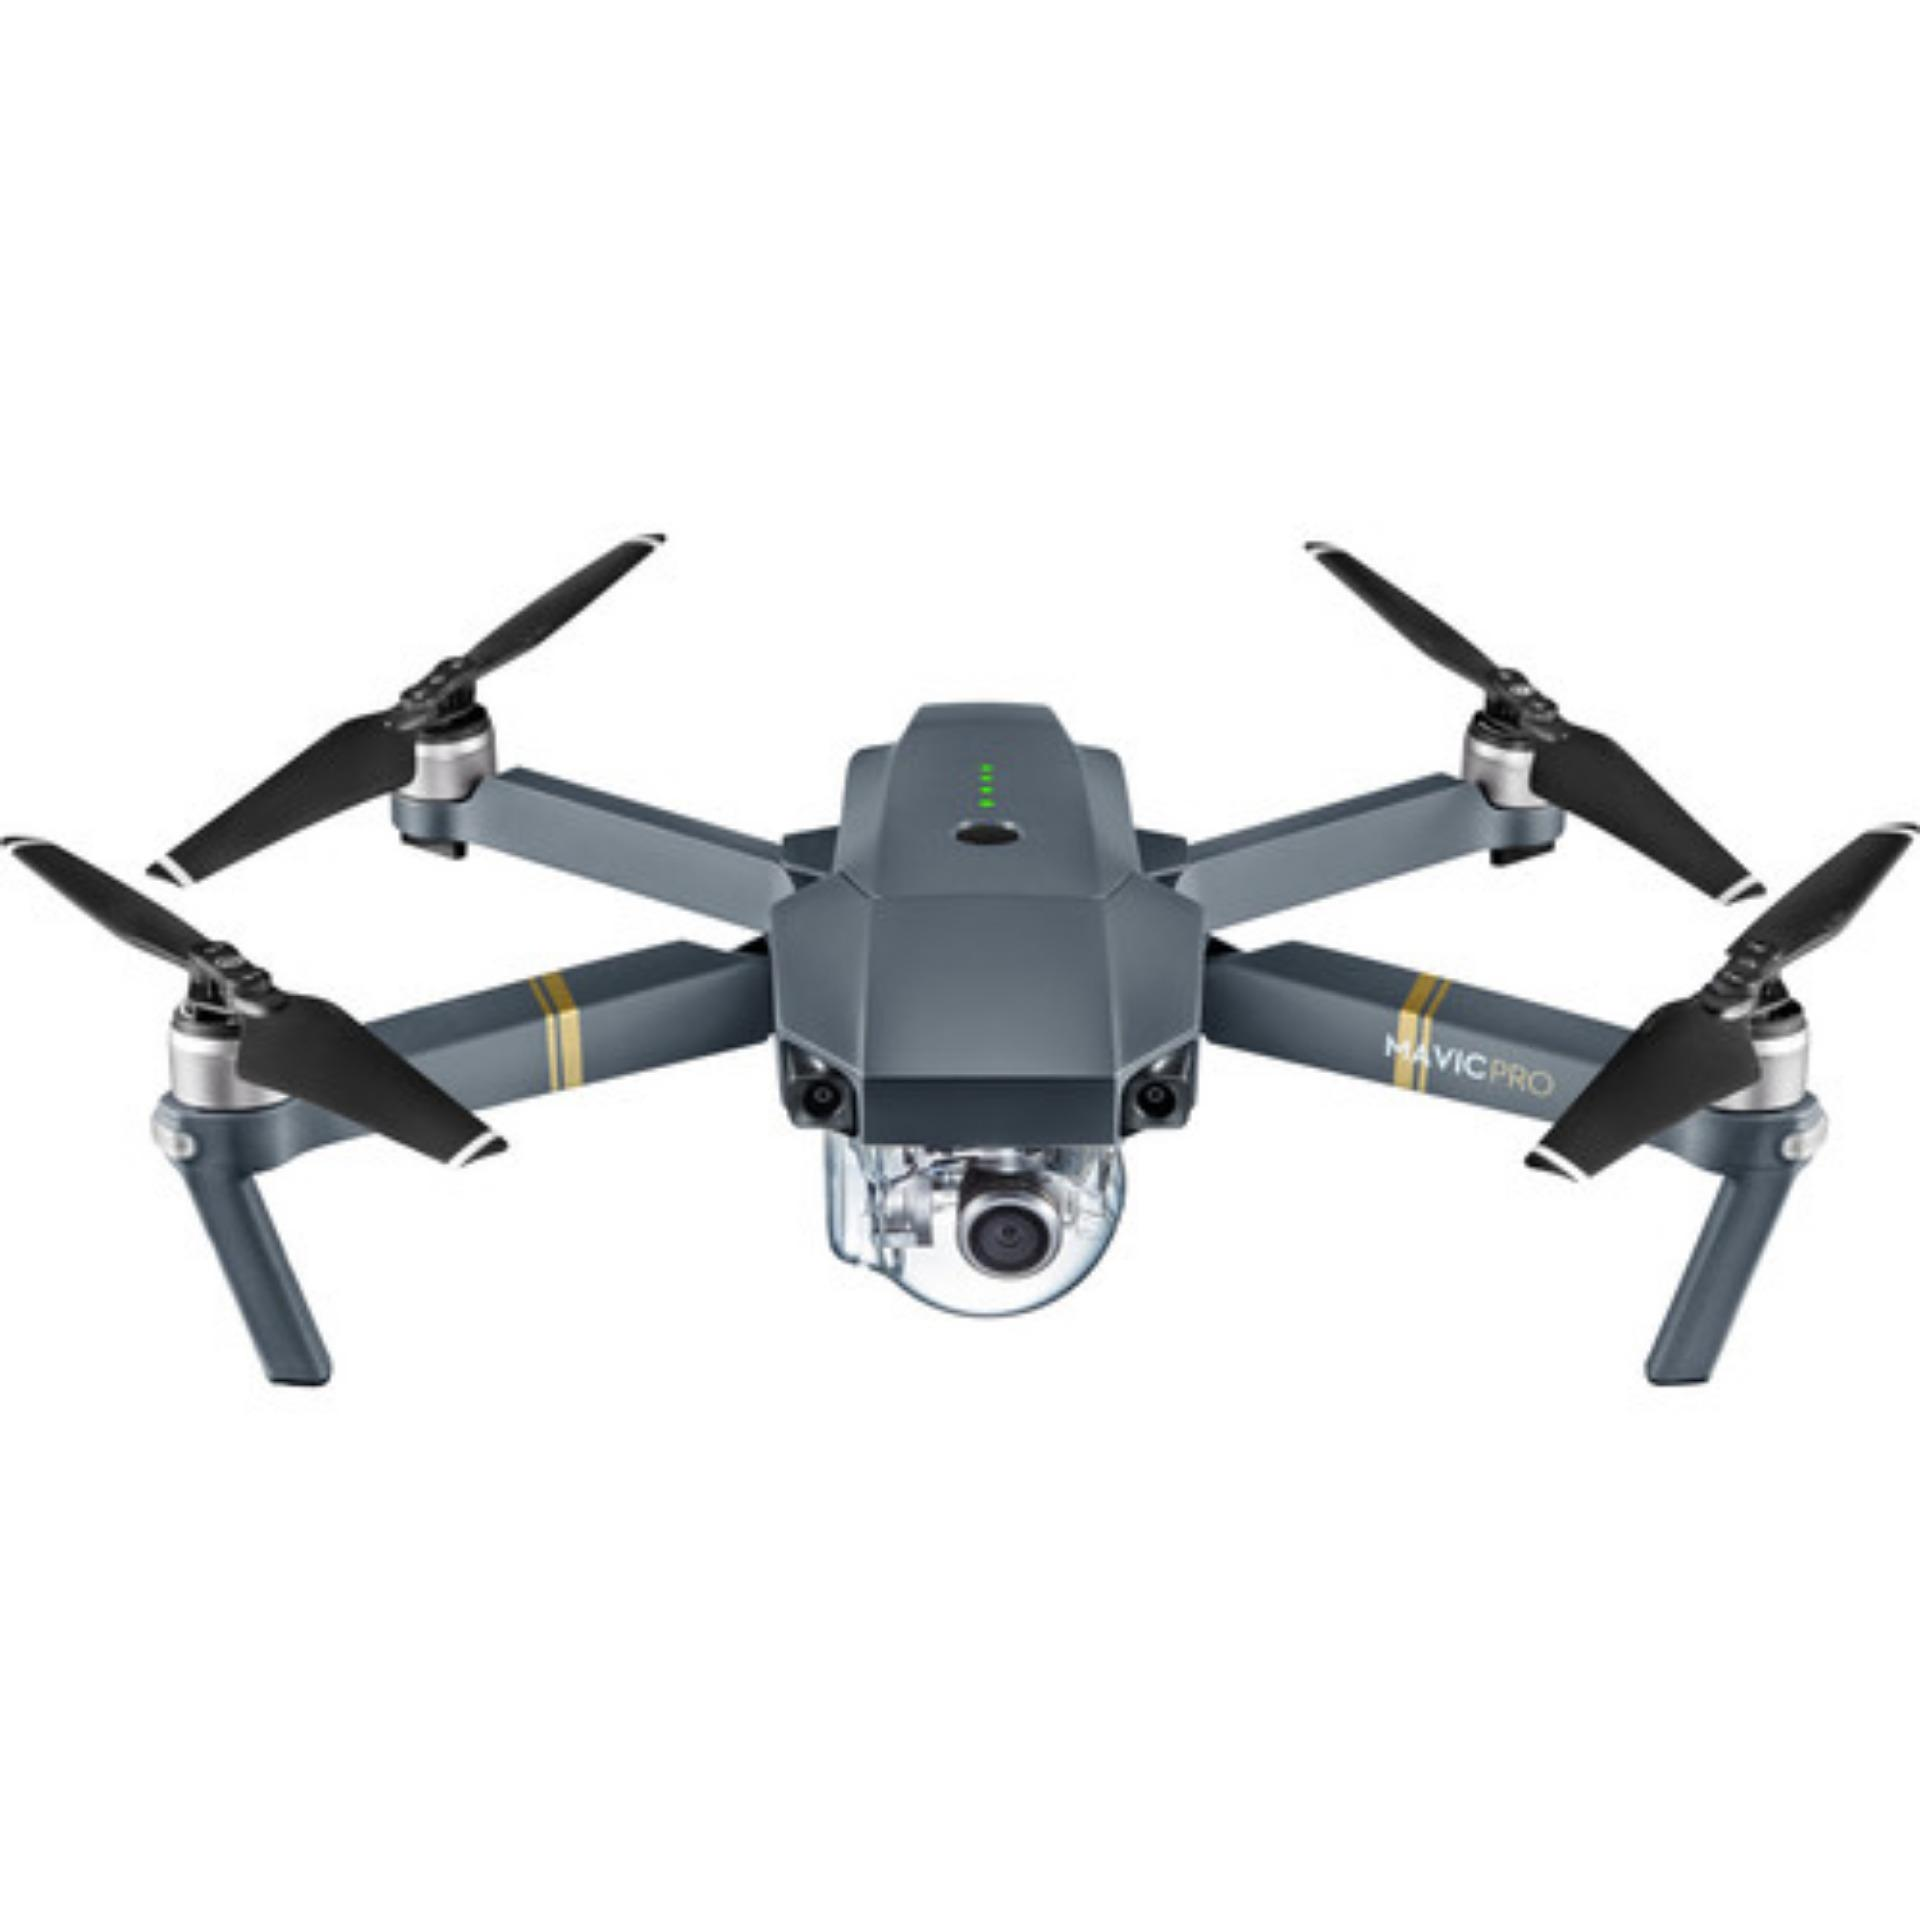 DJI Mavic Pro Fly More Combo Local Set with Free Dry Box